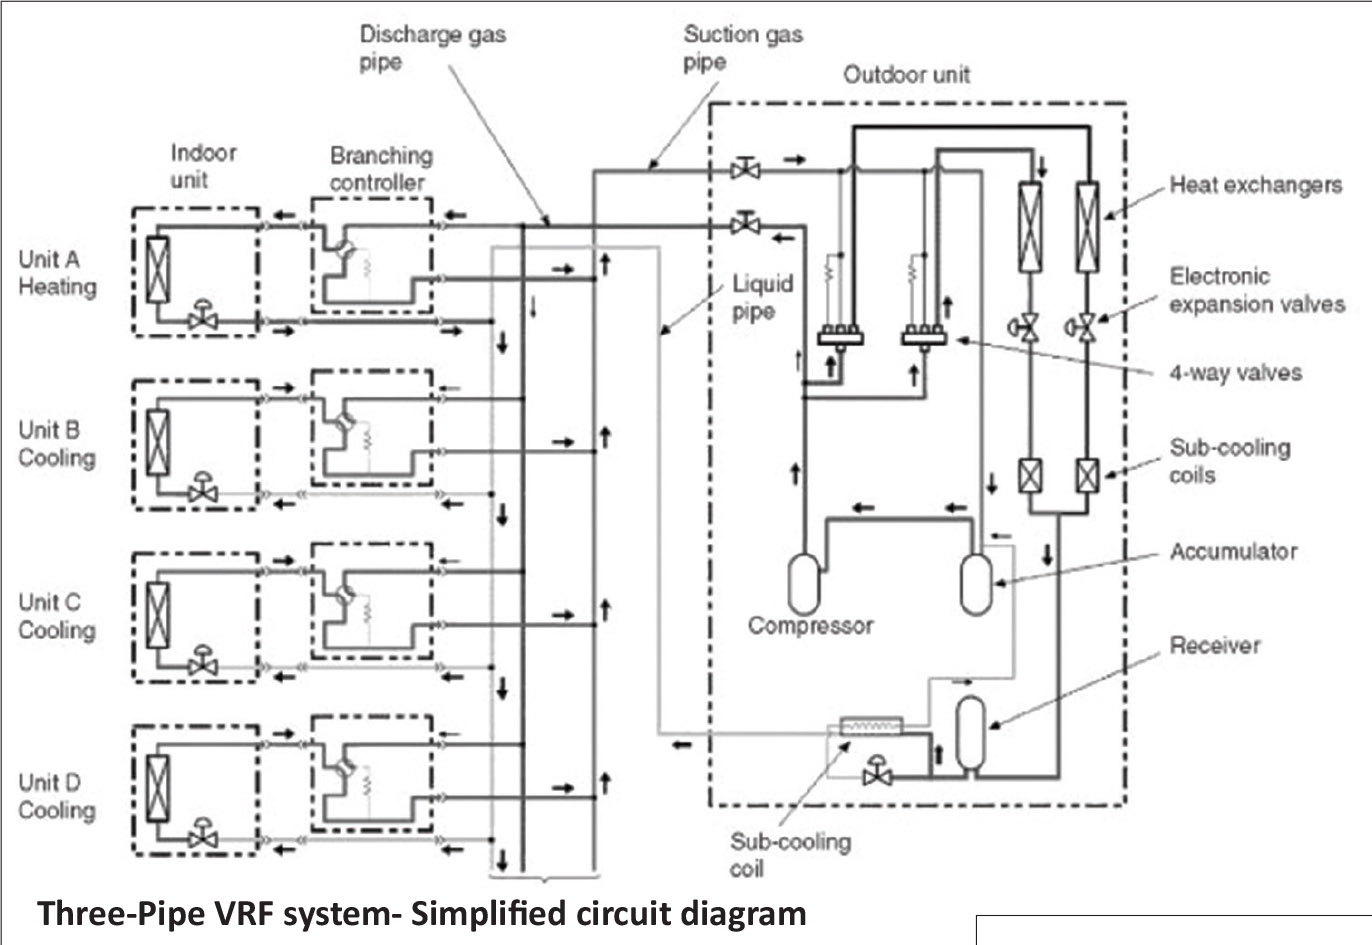 Fan Coil Unit Piping Diagram - Wiring Diagrams ROCK